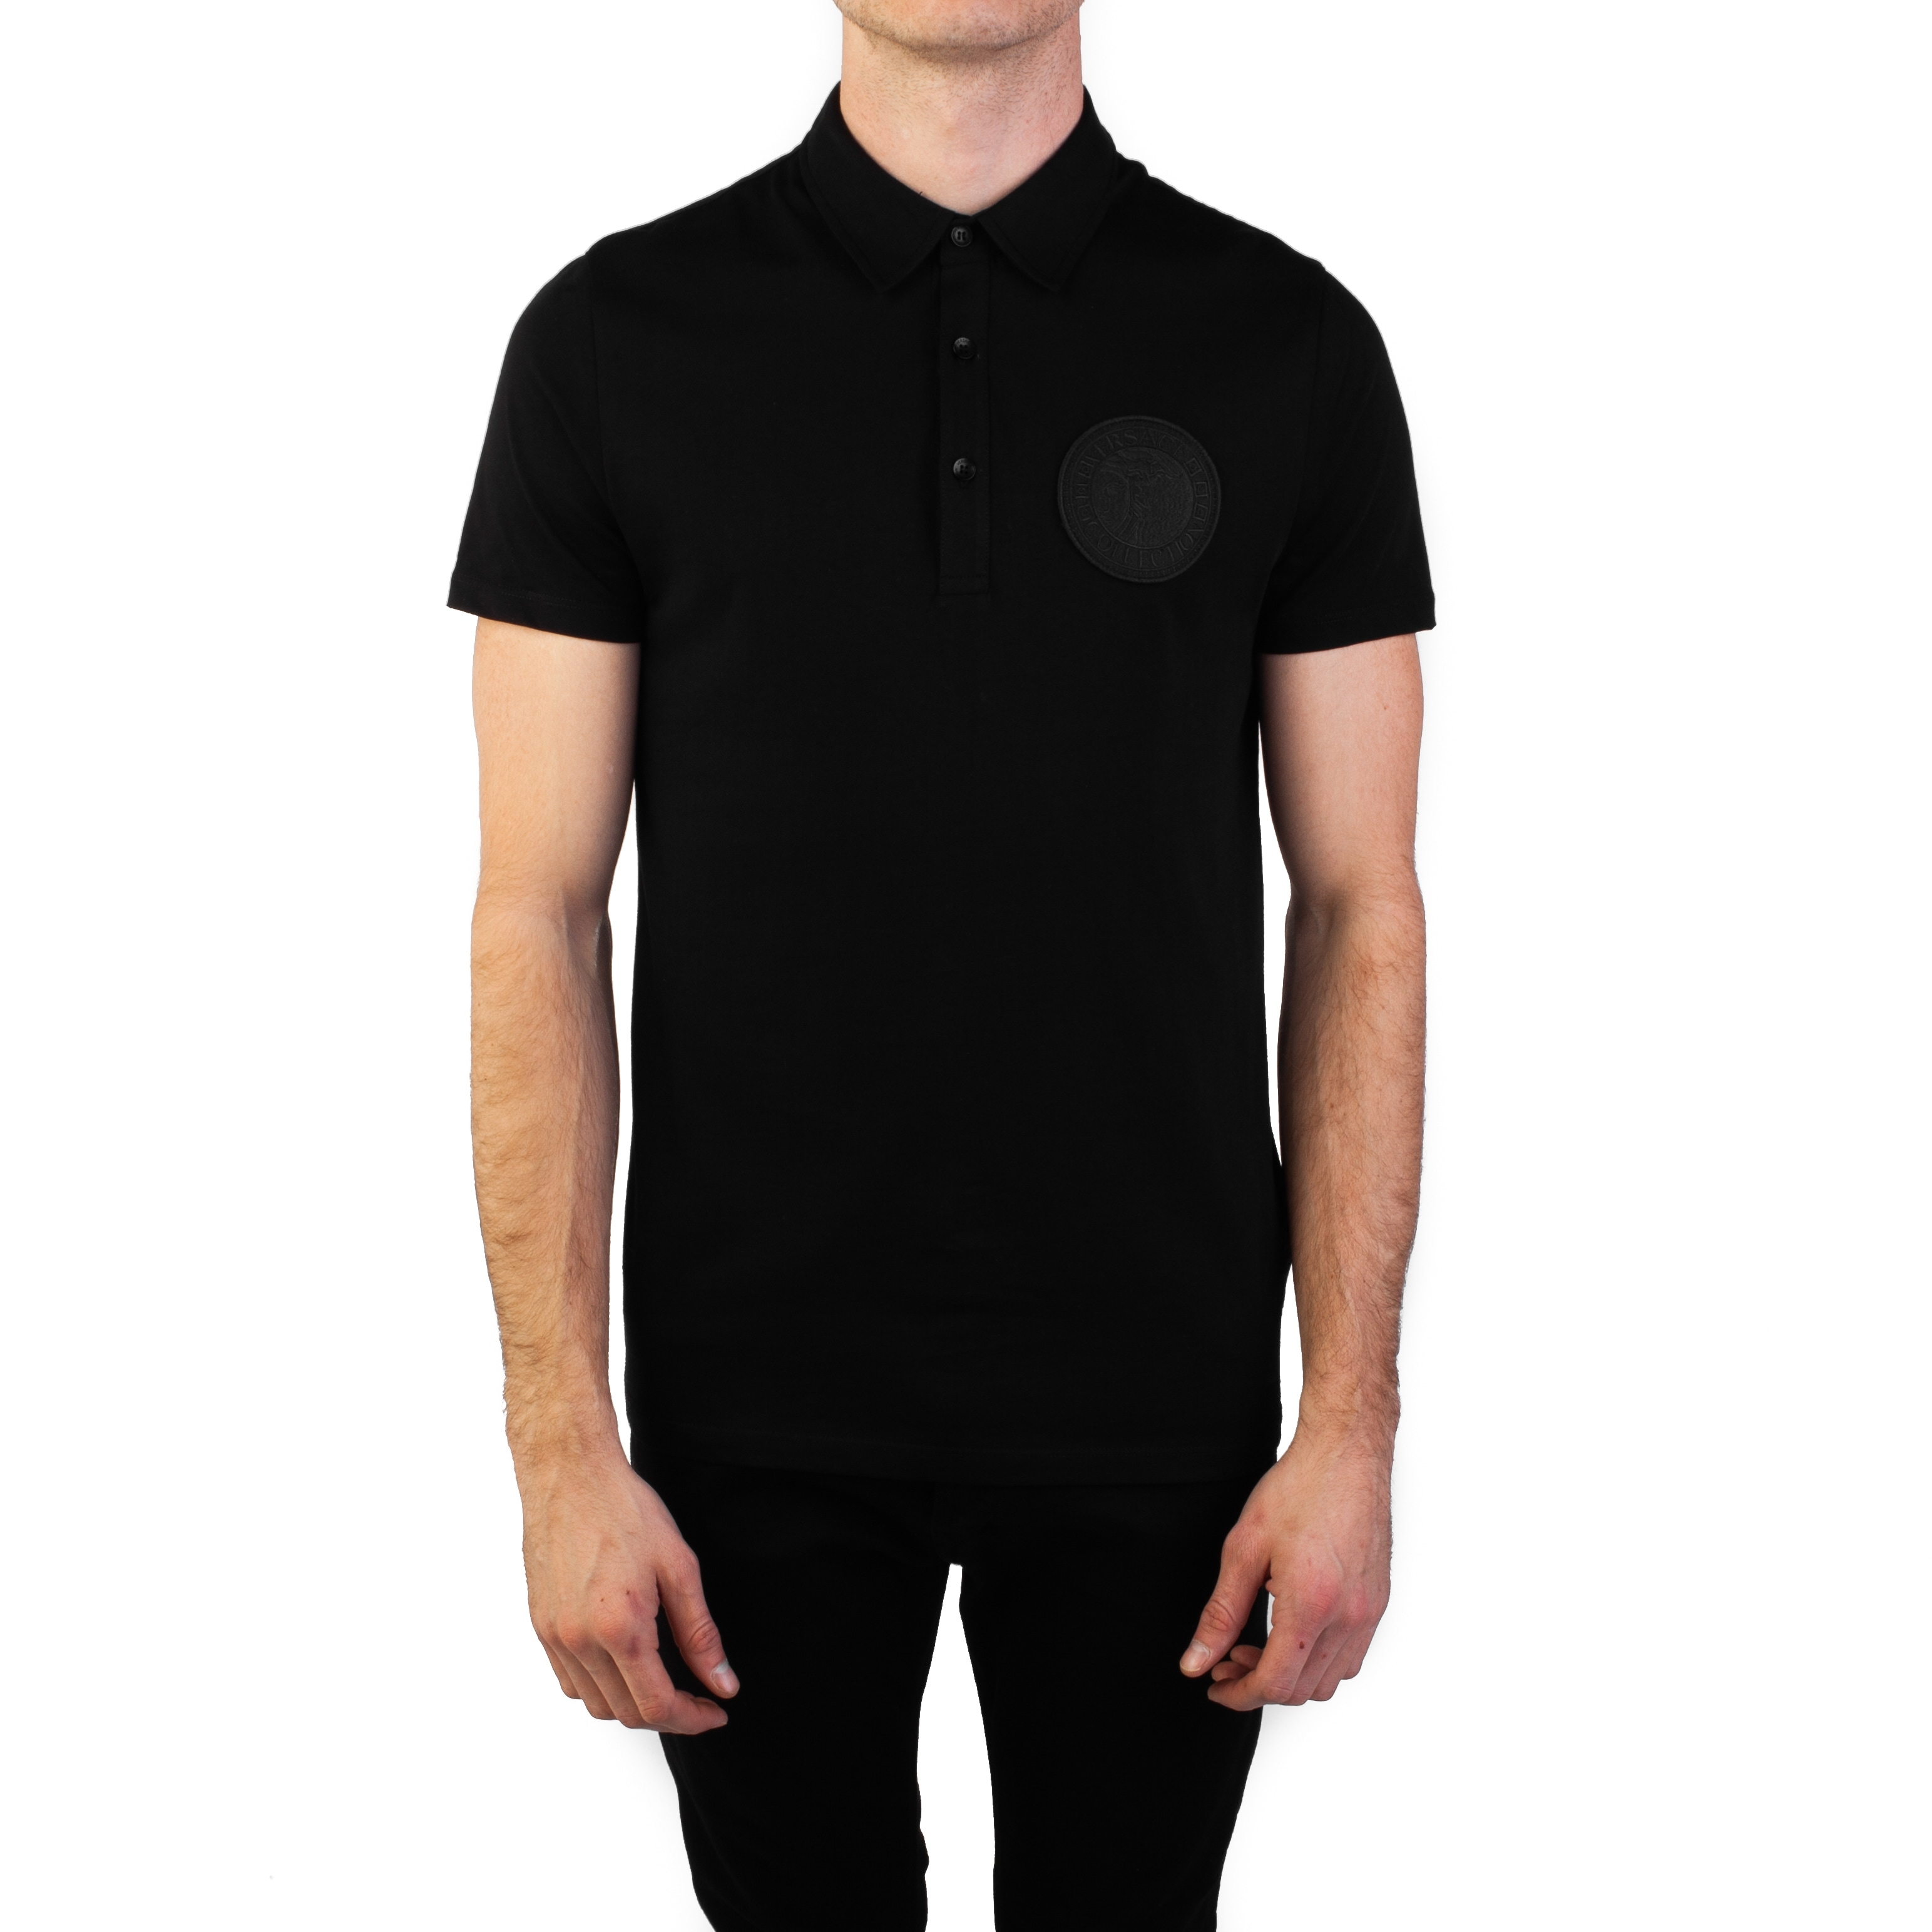 af7d2bd9 Versace Shirts | Find Great Men's Clothing Deals Shopping at Overstock